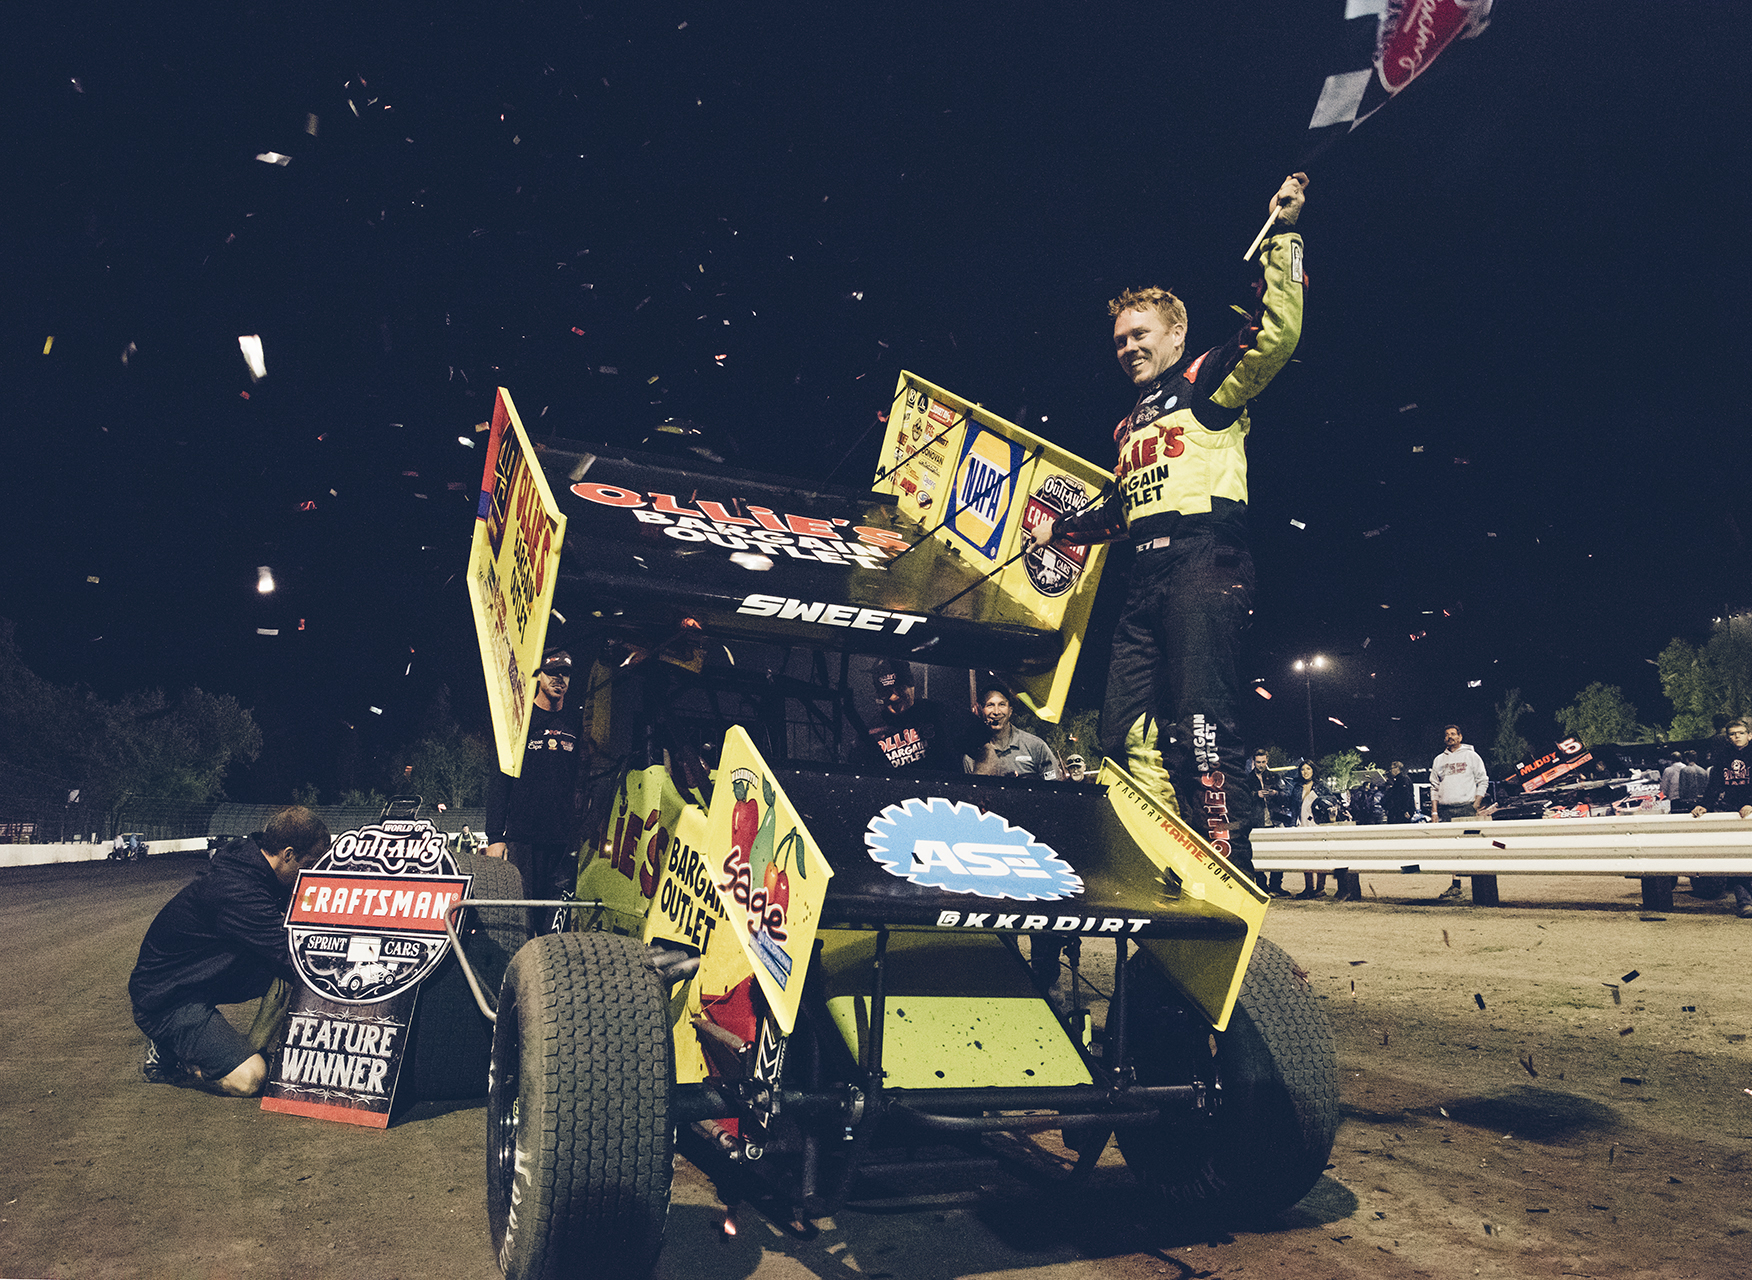 Sweet picks up victory number five of 2017 at Calistoga Speedway.